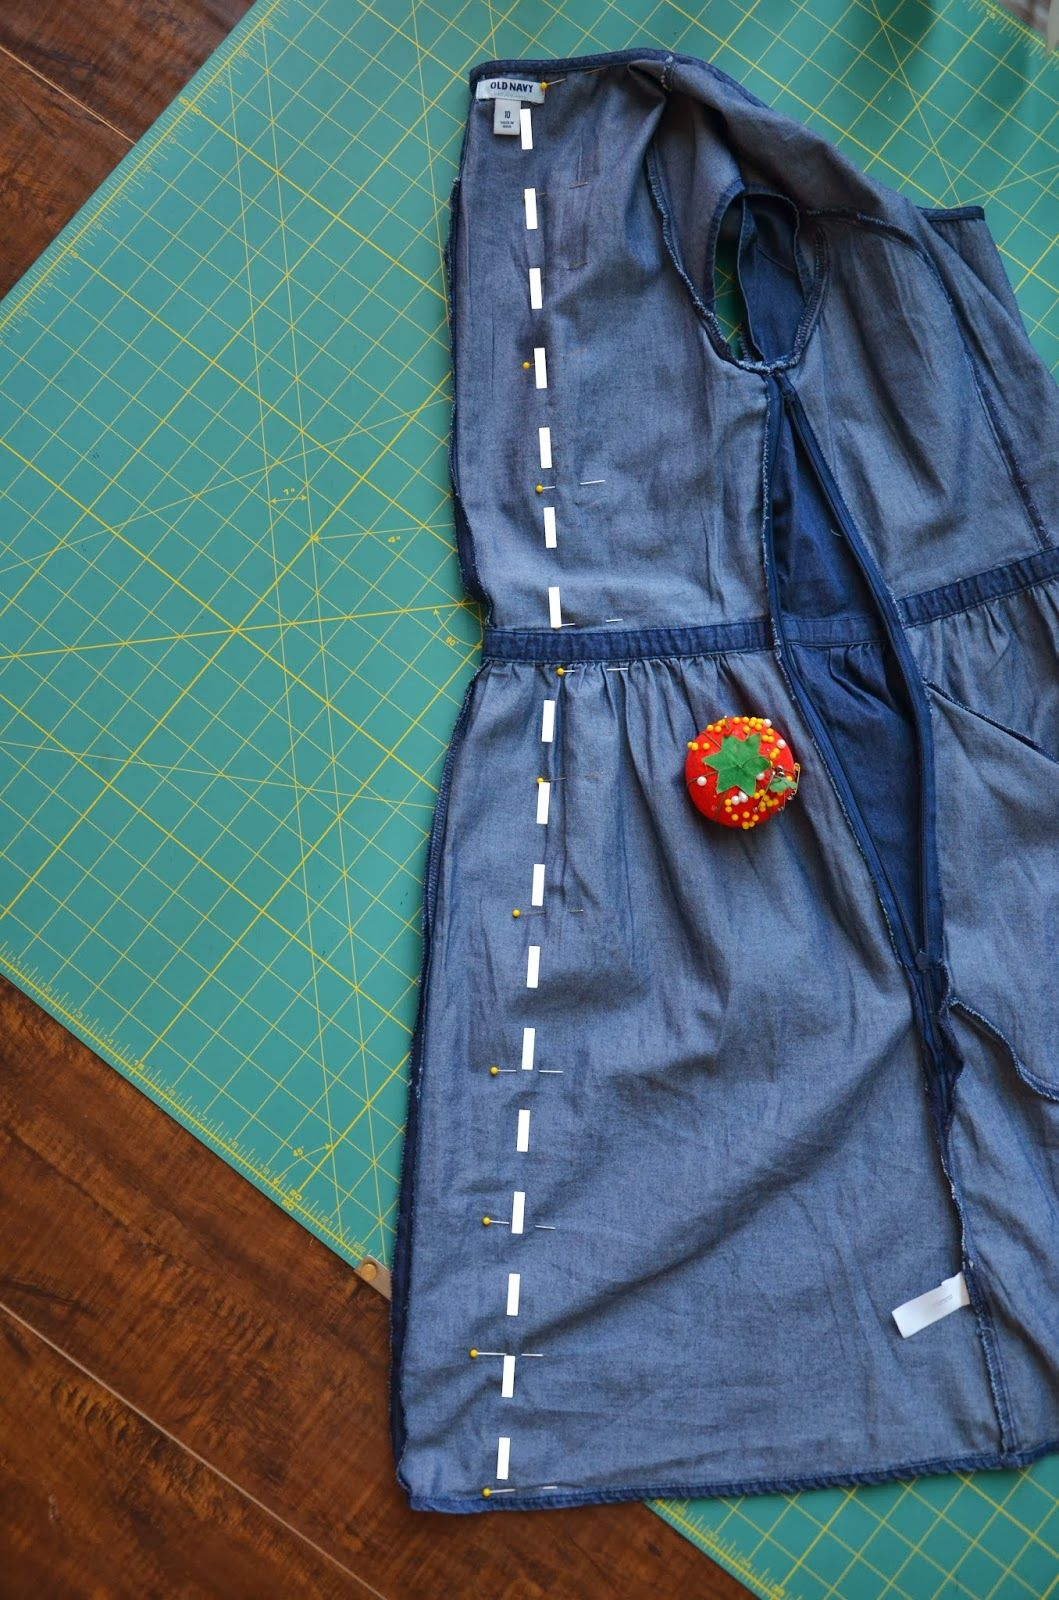 Resizing An Oversized Side Zippered Dres Tutorial Altering Clothe Refashion Makeover Custom Paraphrase Clothing